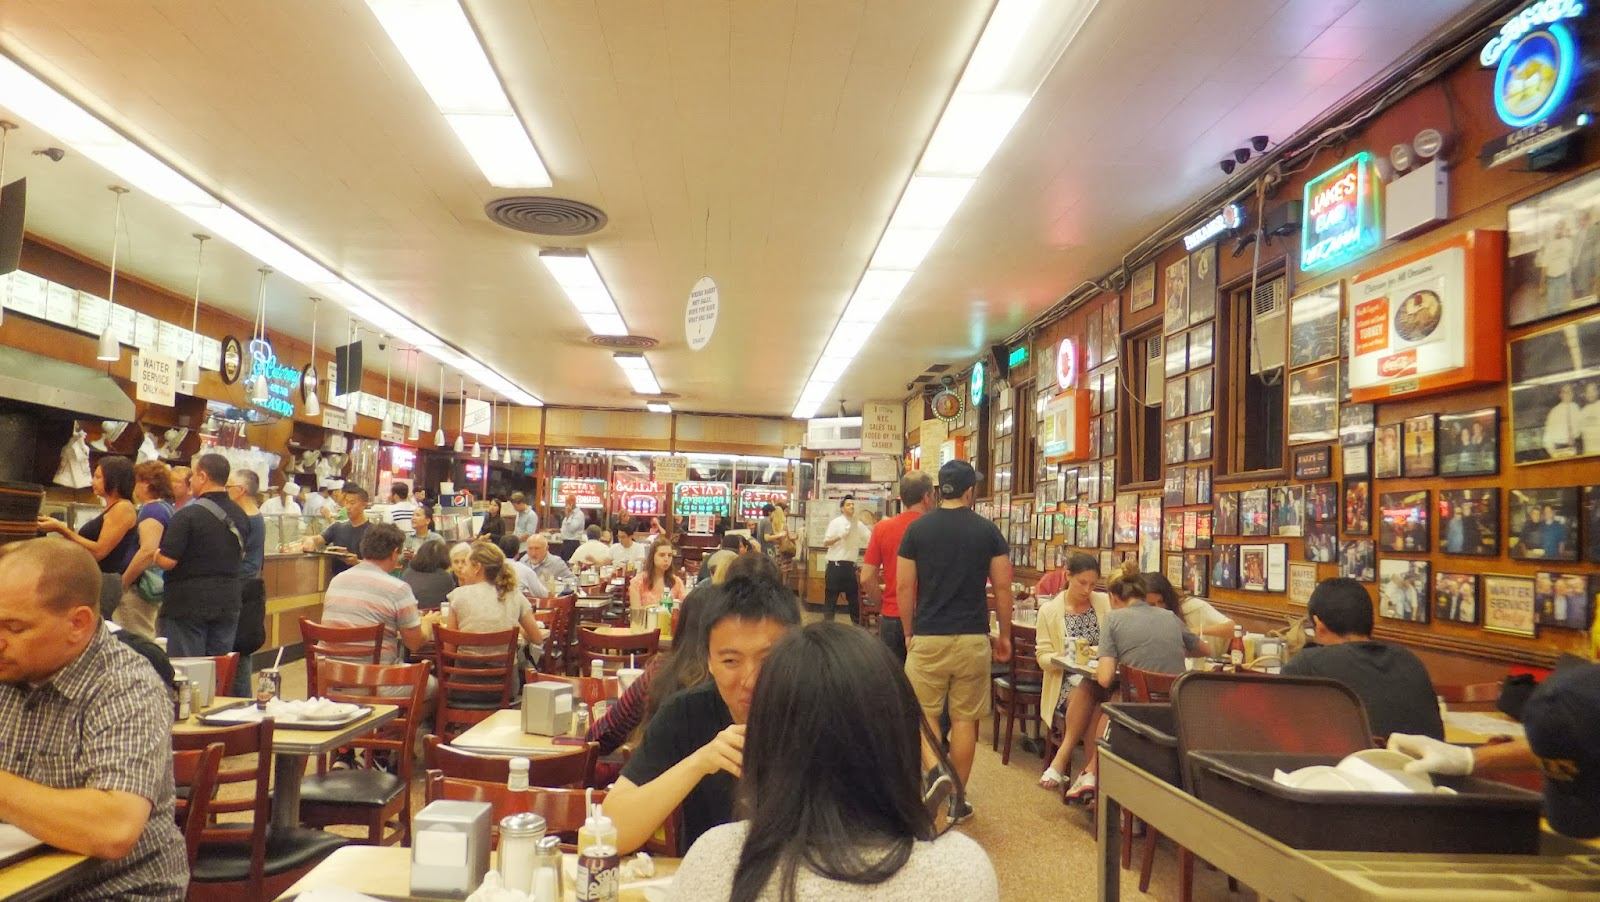 Katz´s Deli New York, Elisa N, Blog de Viajes, Lifestyle, Travel, LES